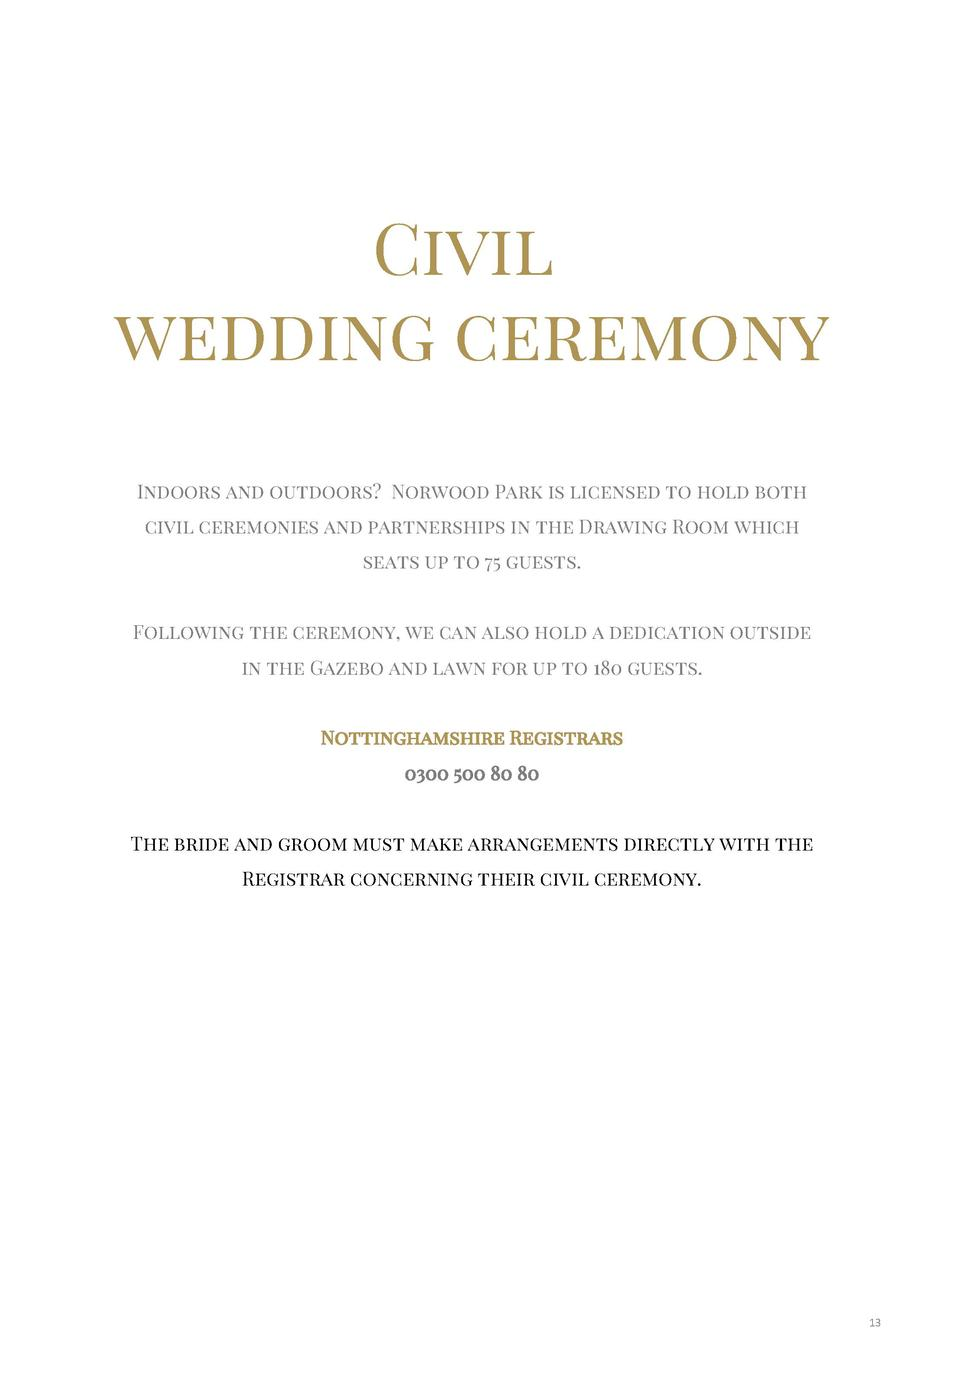 Civil wedding ceremony Indoors and outdoors  Norwood Park is licensed to hold both civil ceremonies and partnerships in th...